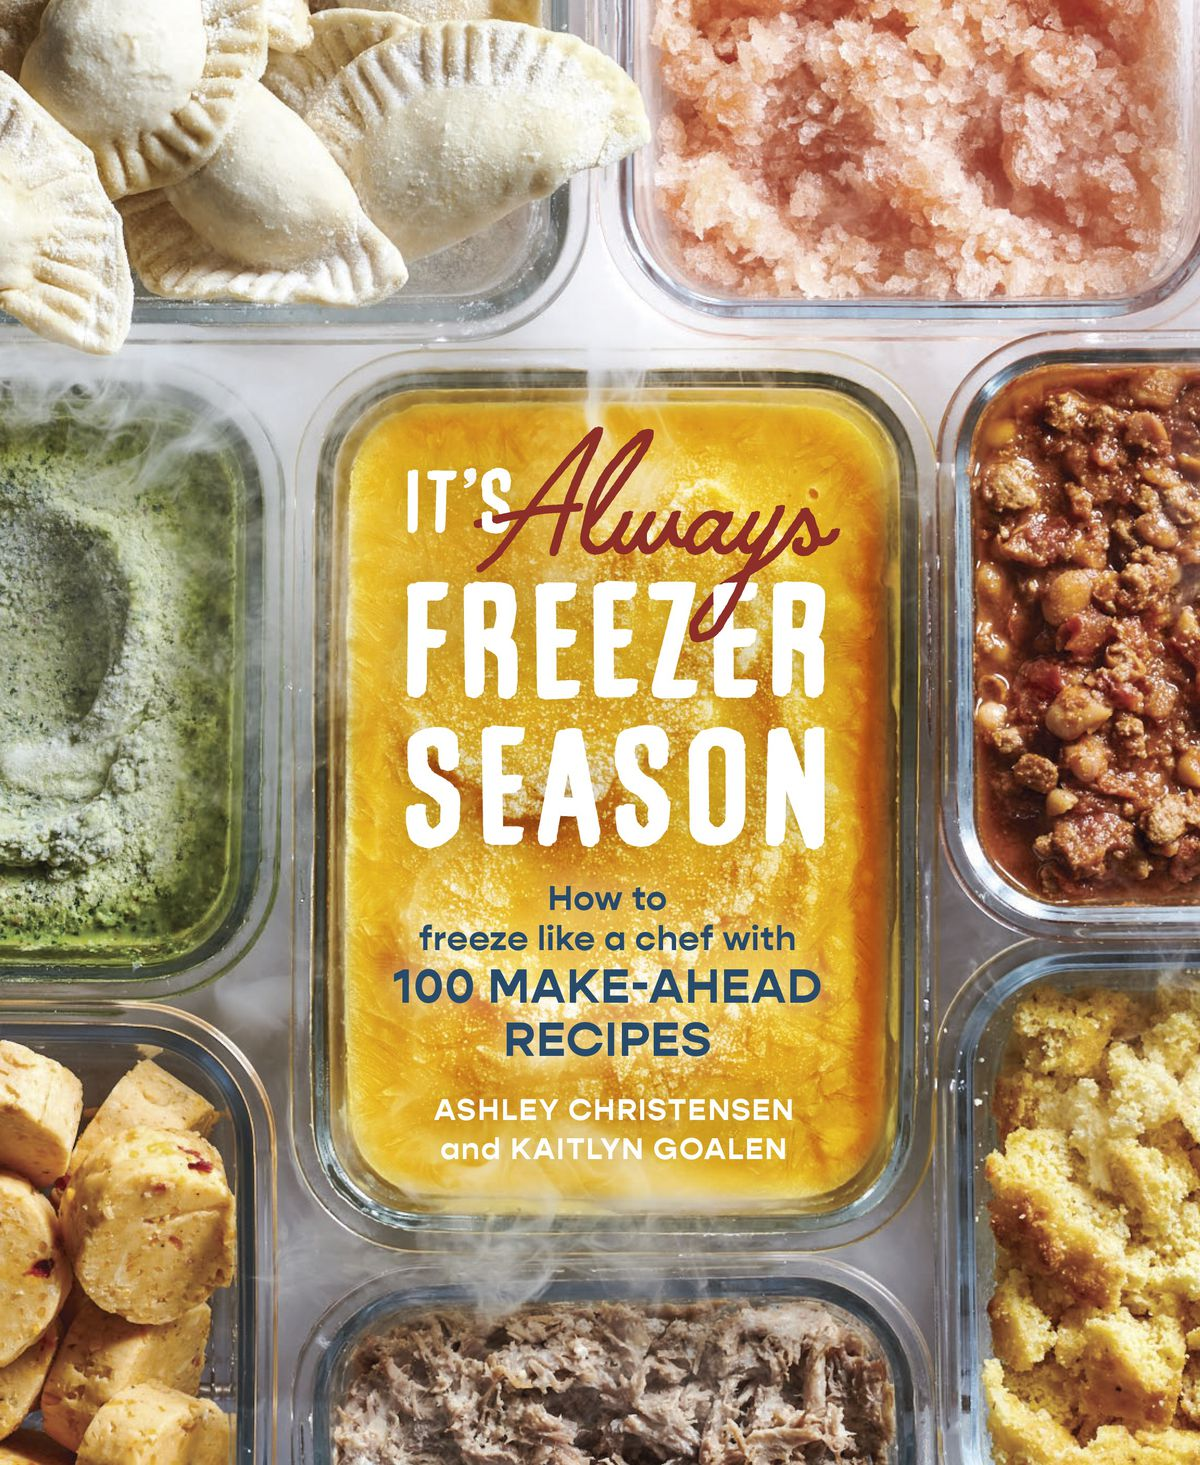 A cookbook cover with a photo of class containers of frozen food